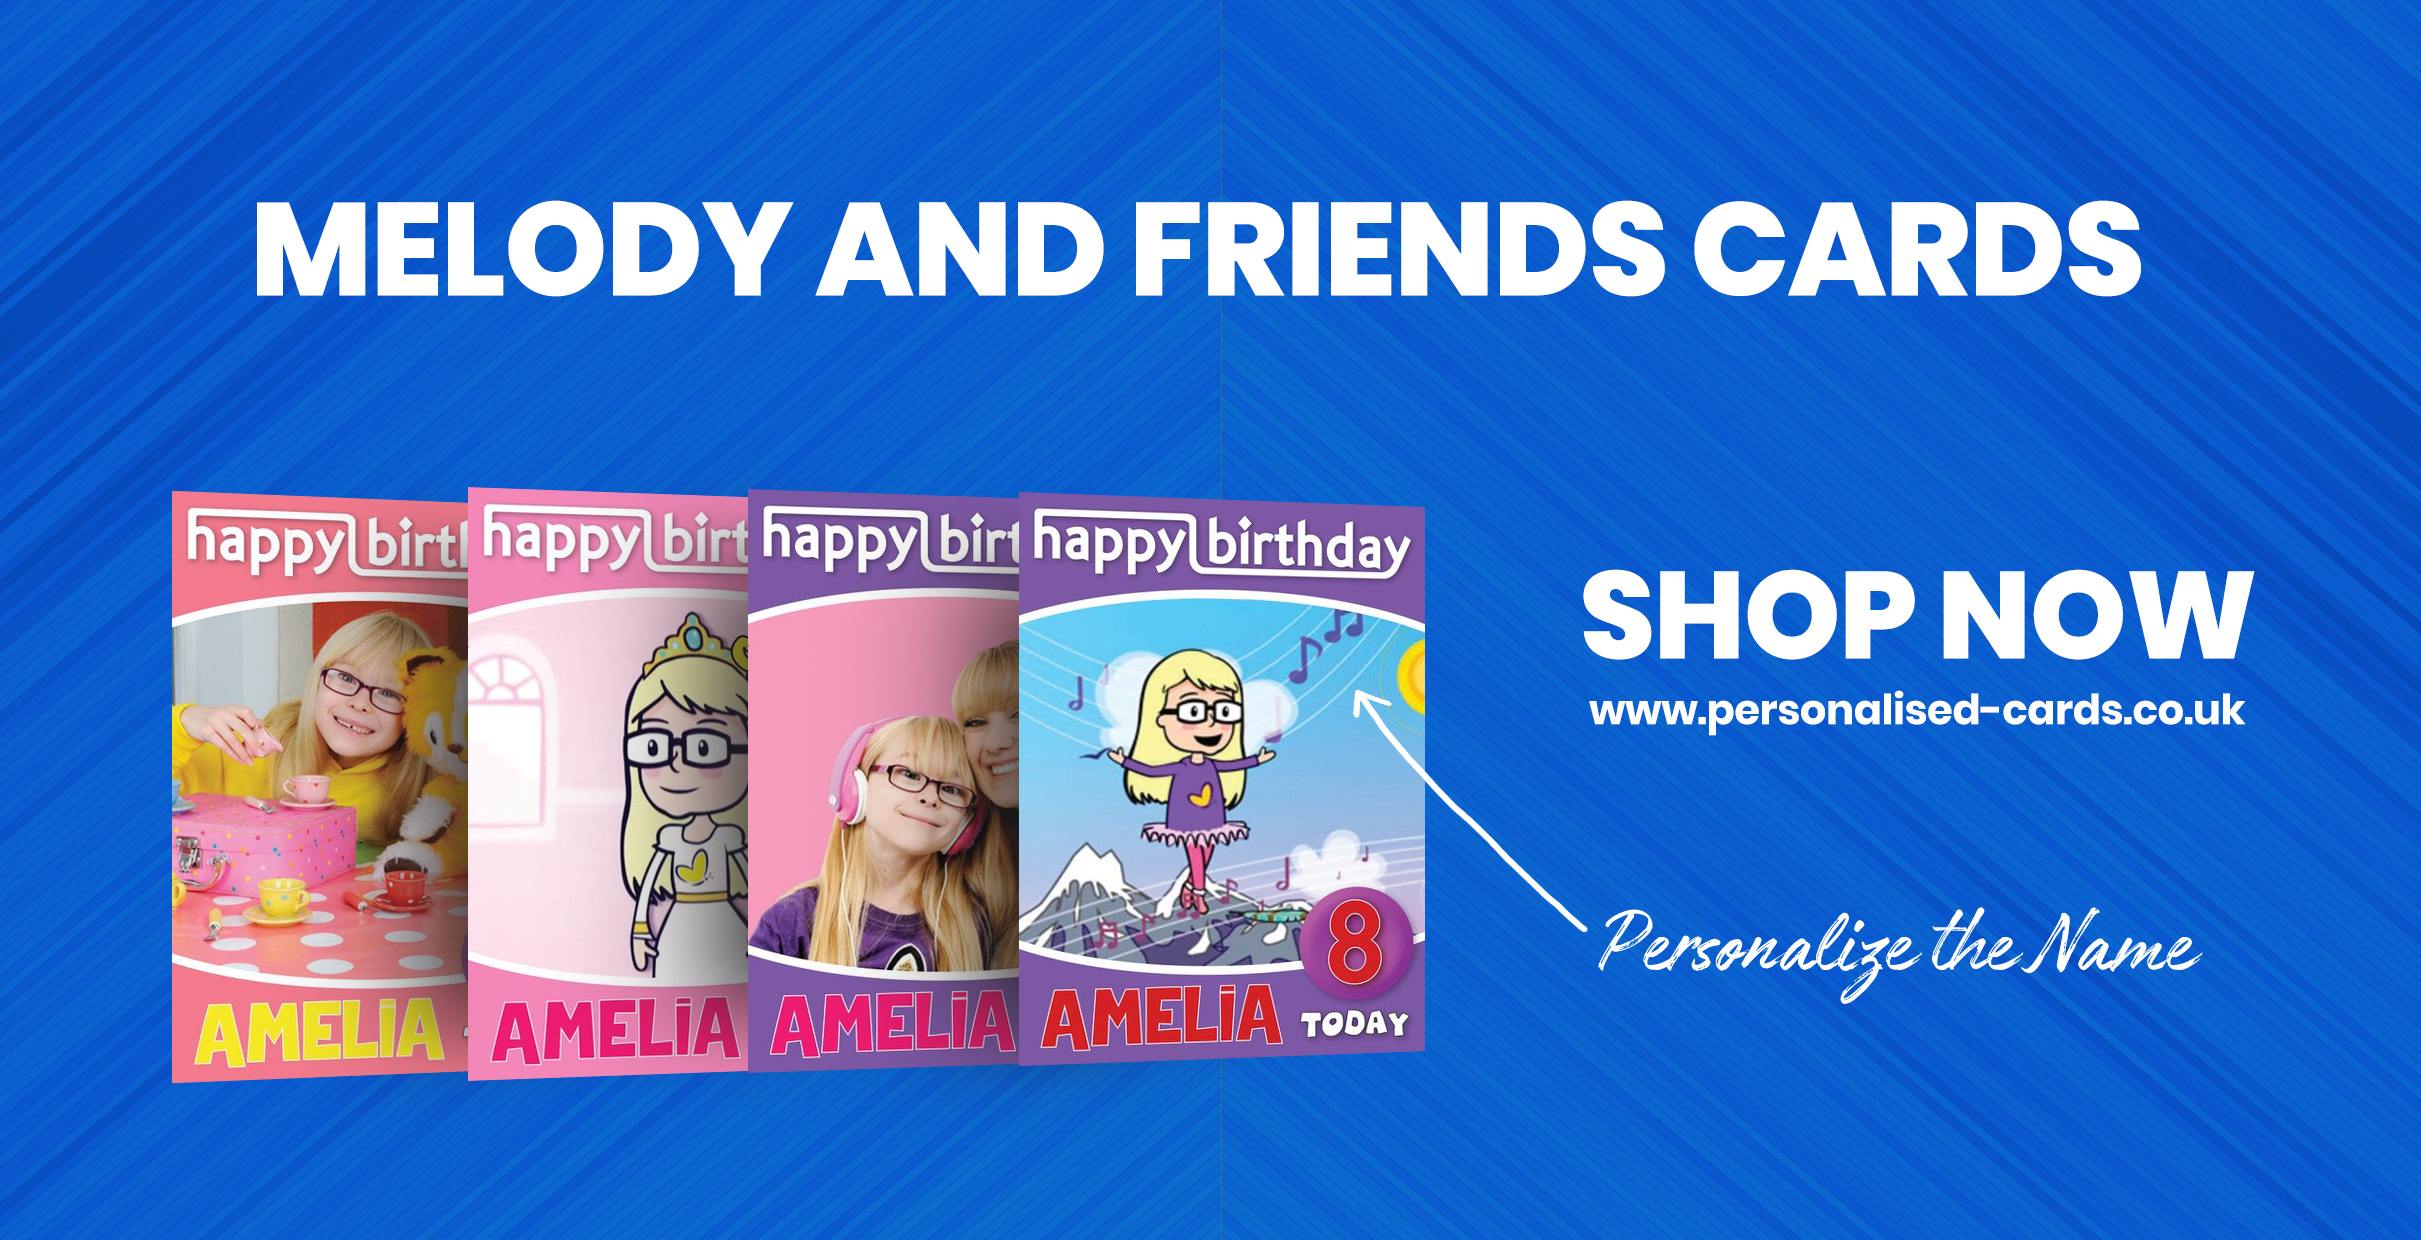 melody-and-friends-cards.jpg